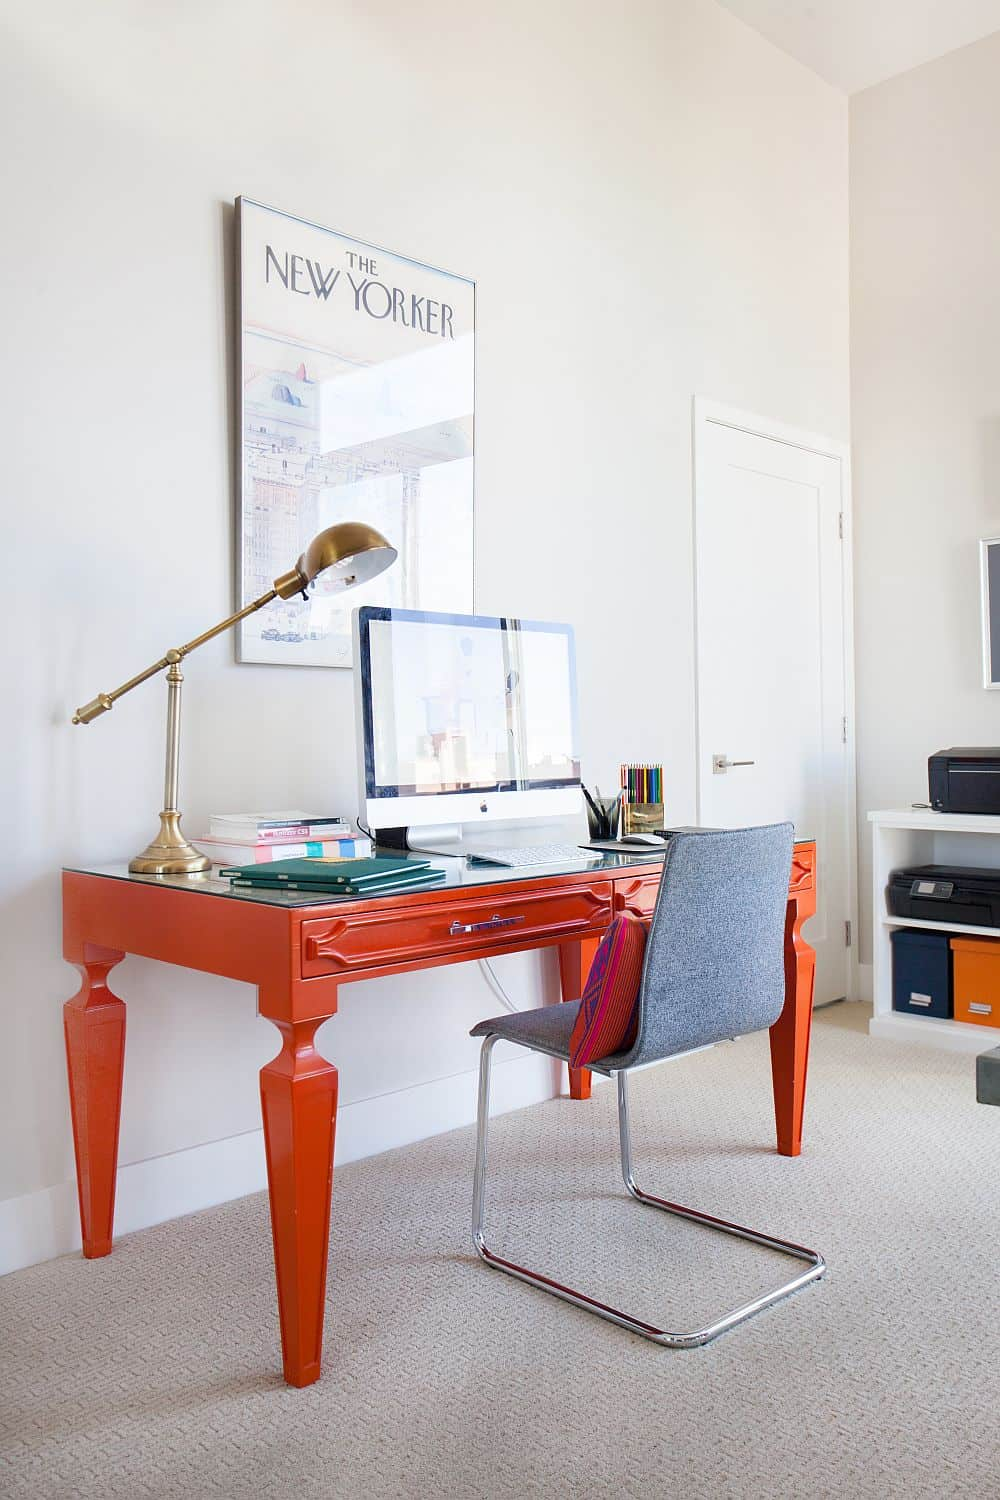 A pop of orange can bring out the space and make it feel